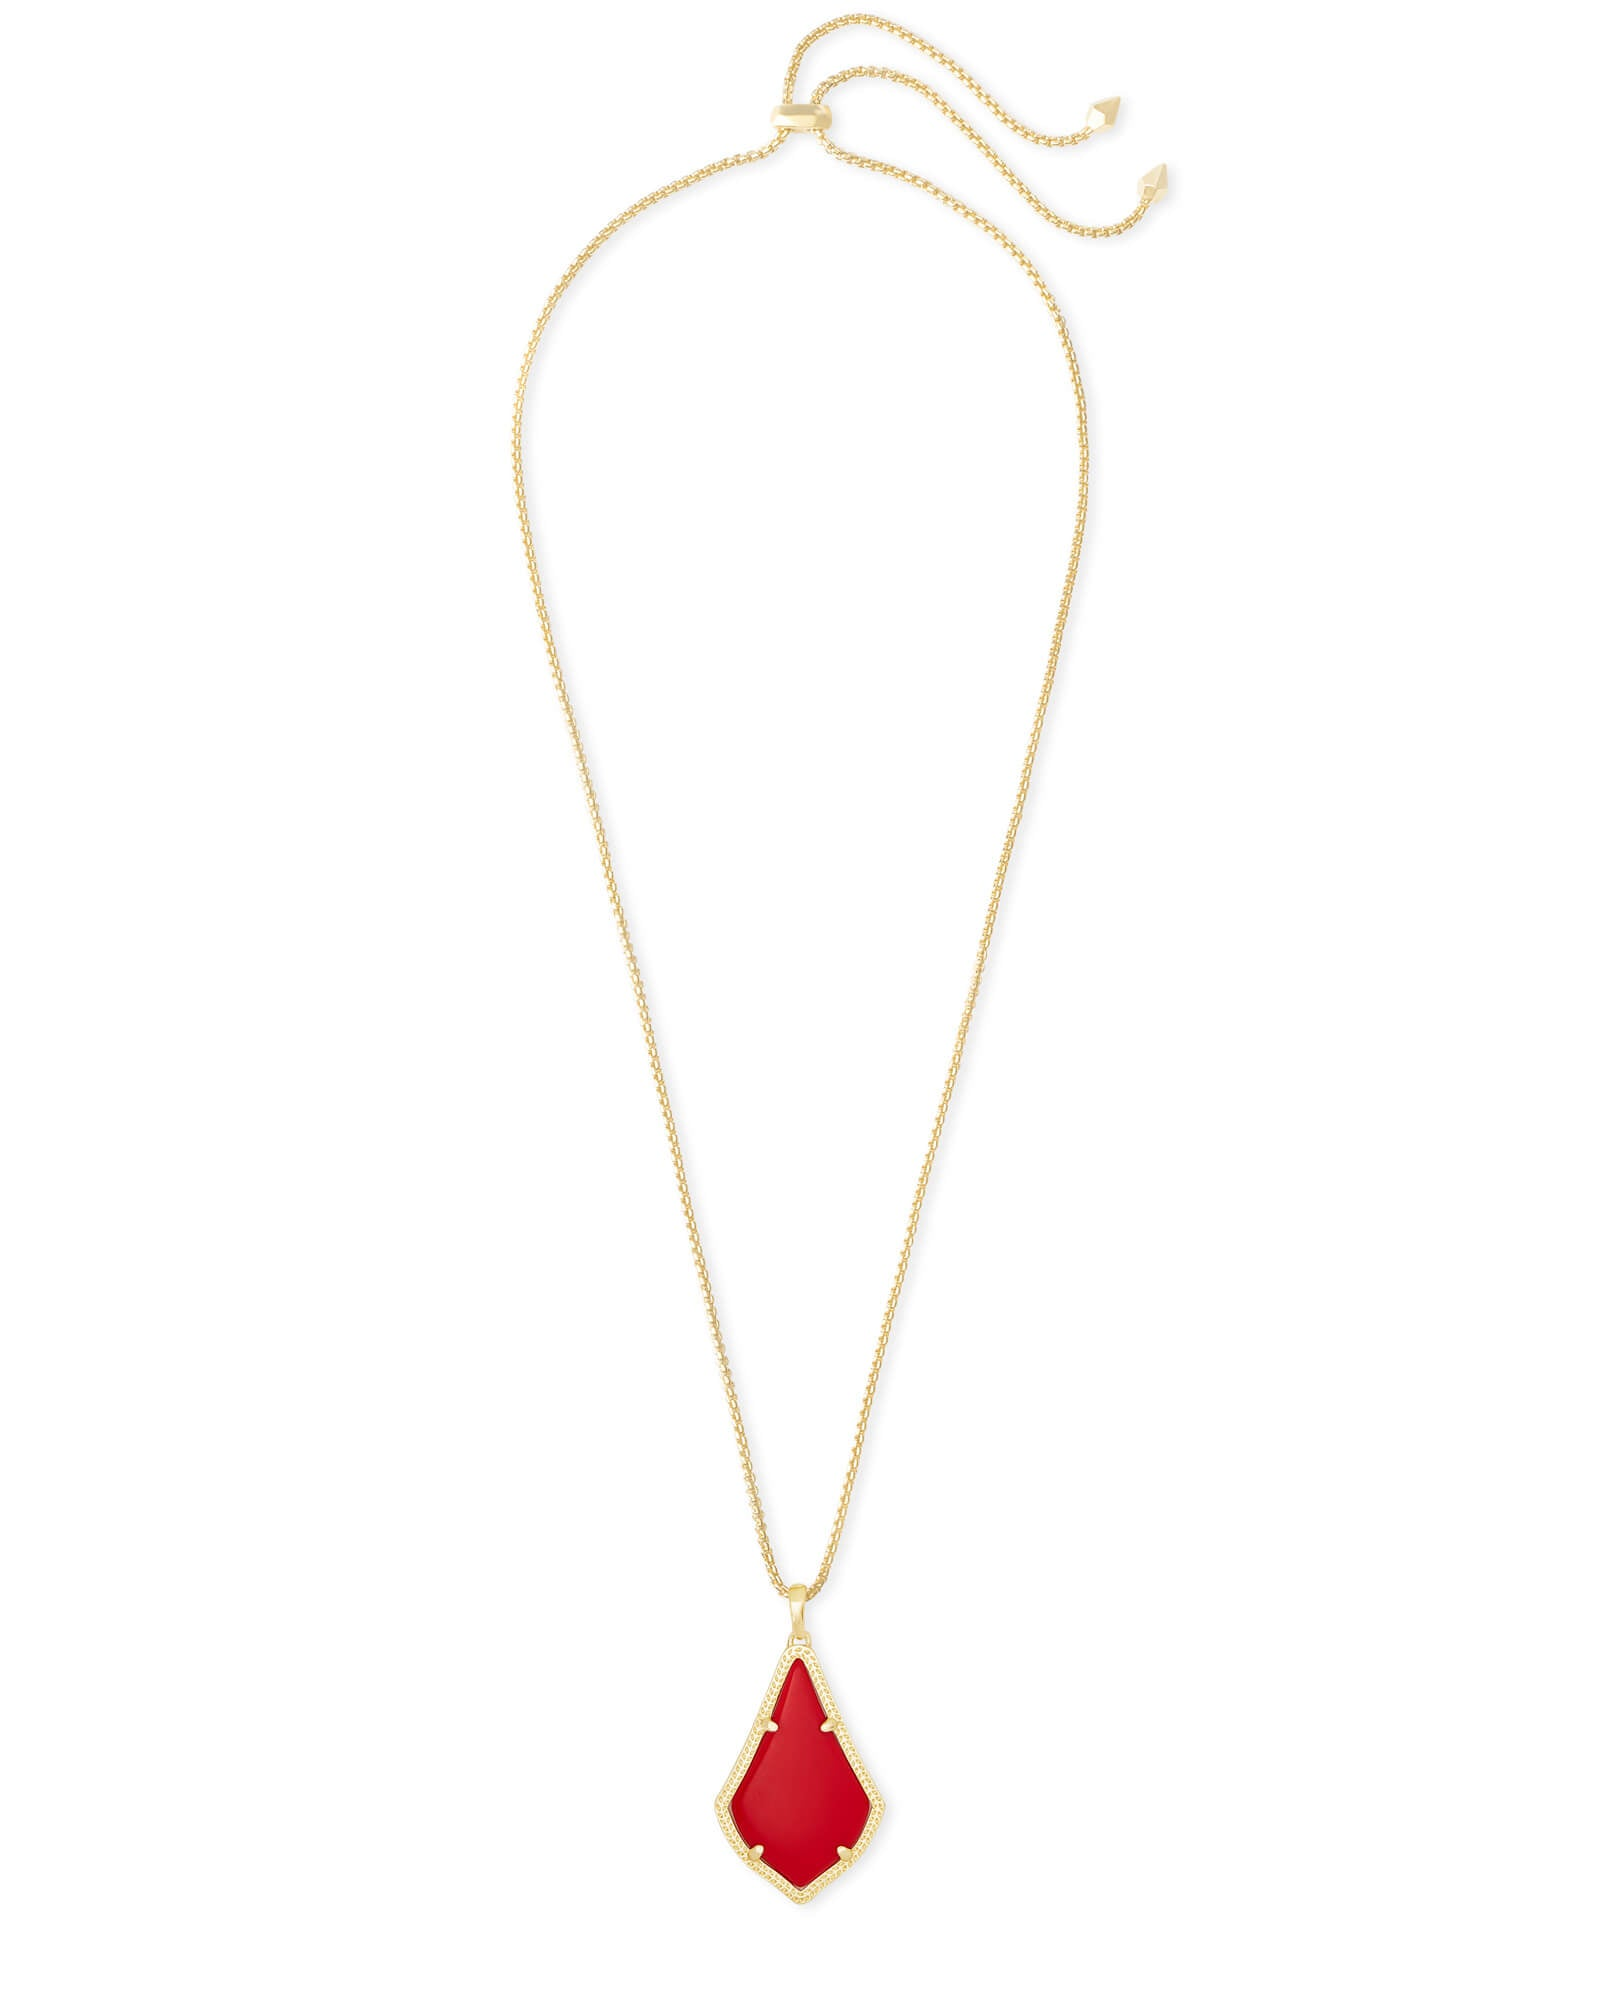 Kendra Scott Alex Gold Pendant Necklace In Bright Red Opaque Glass